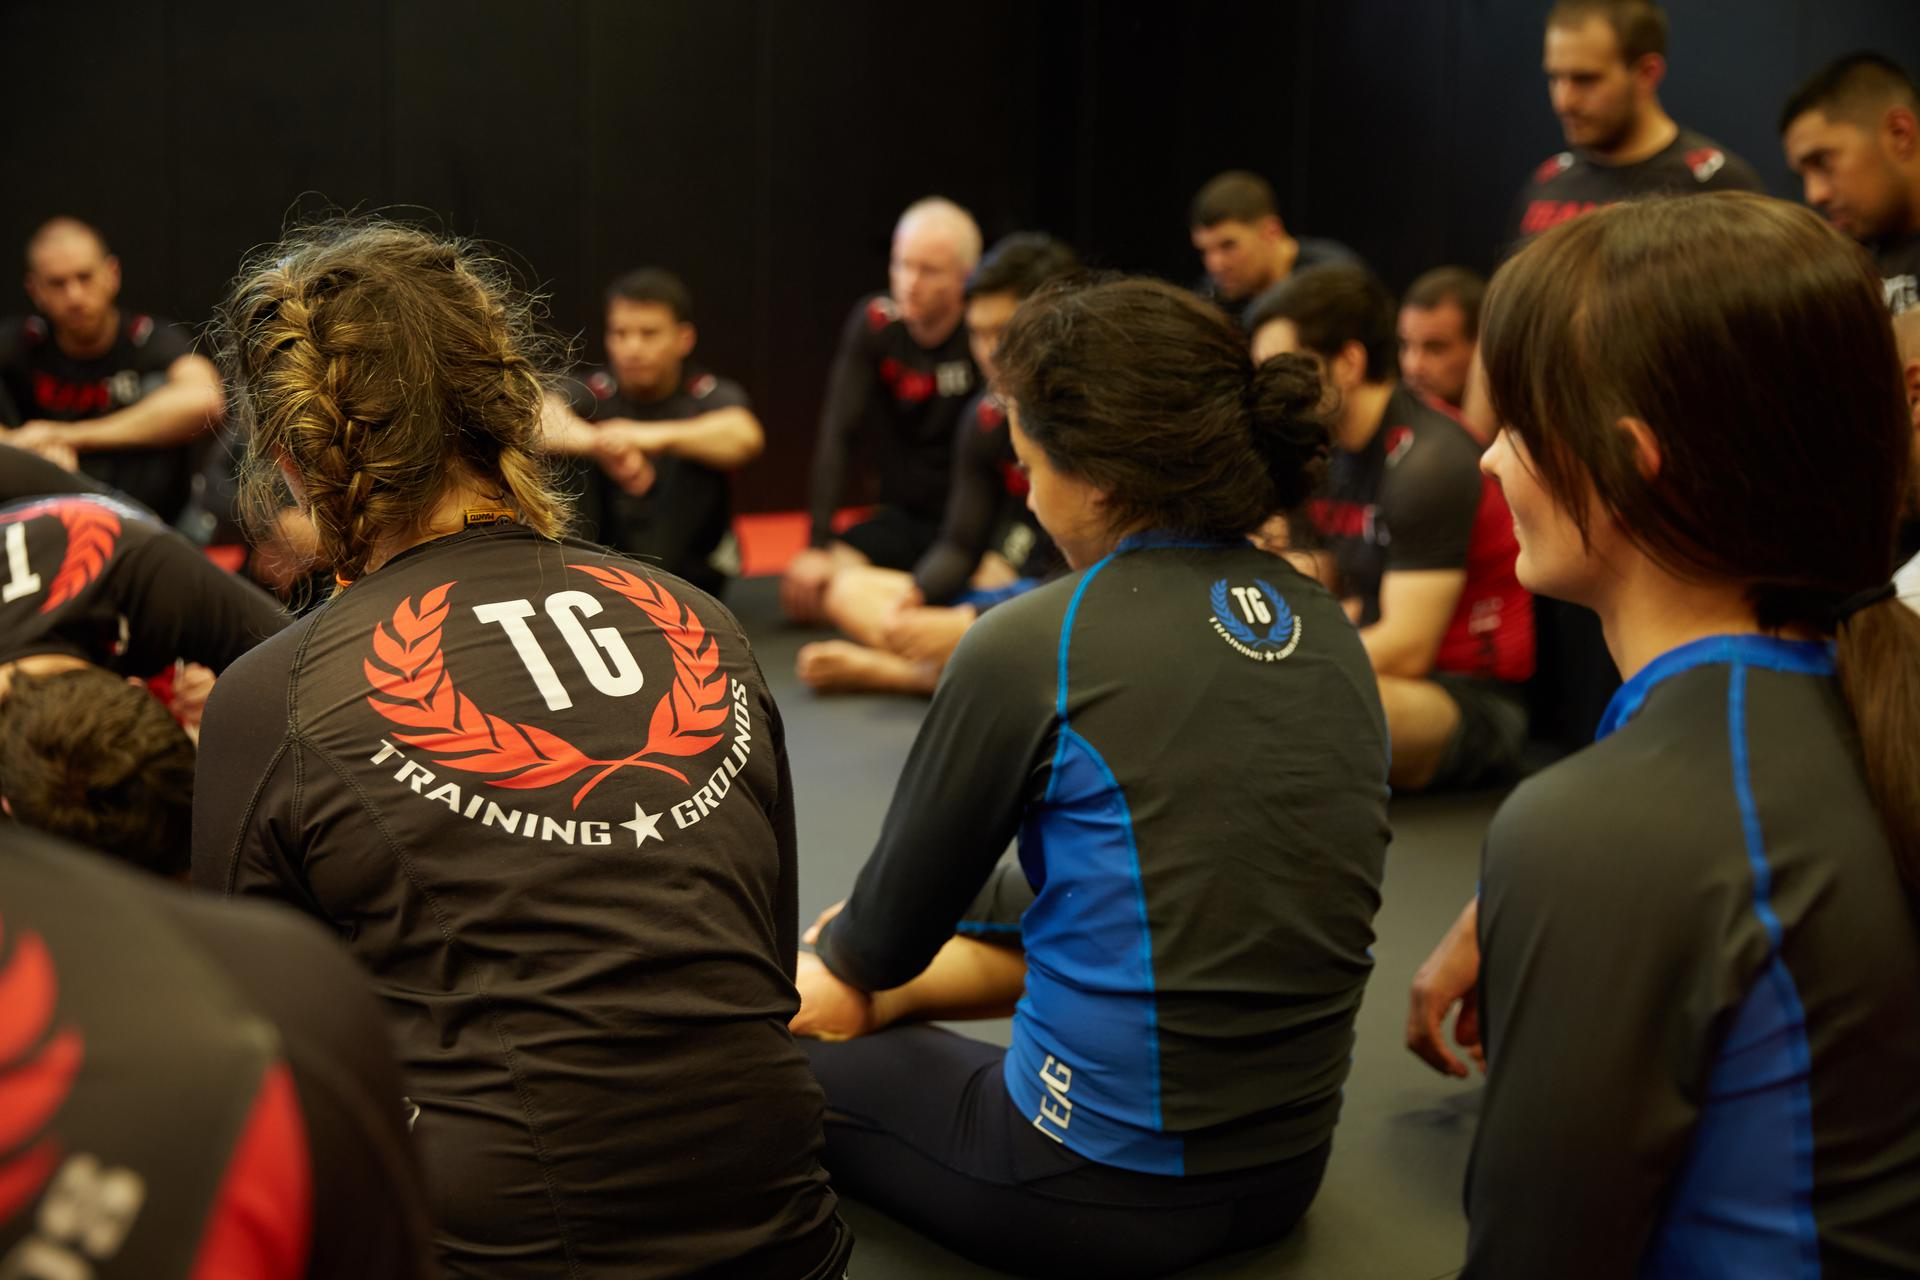 a shot from the back as a group of females watch the bjj class